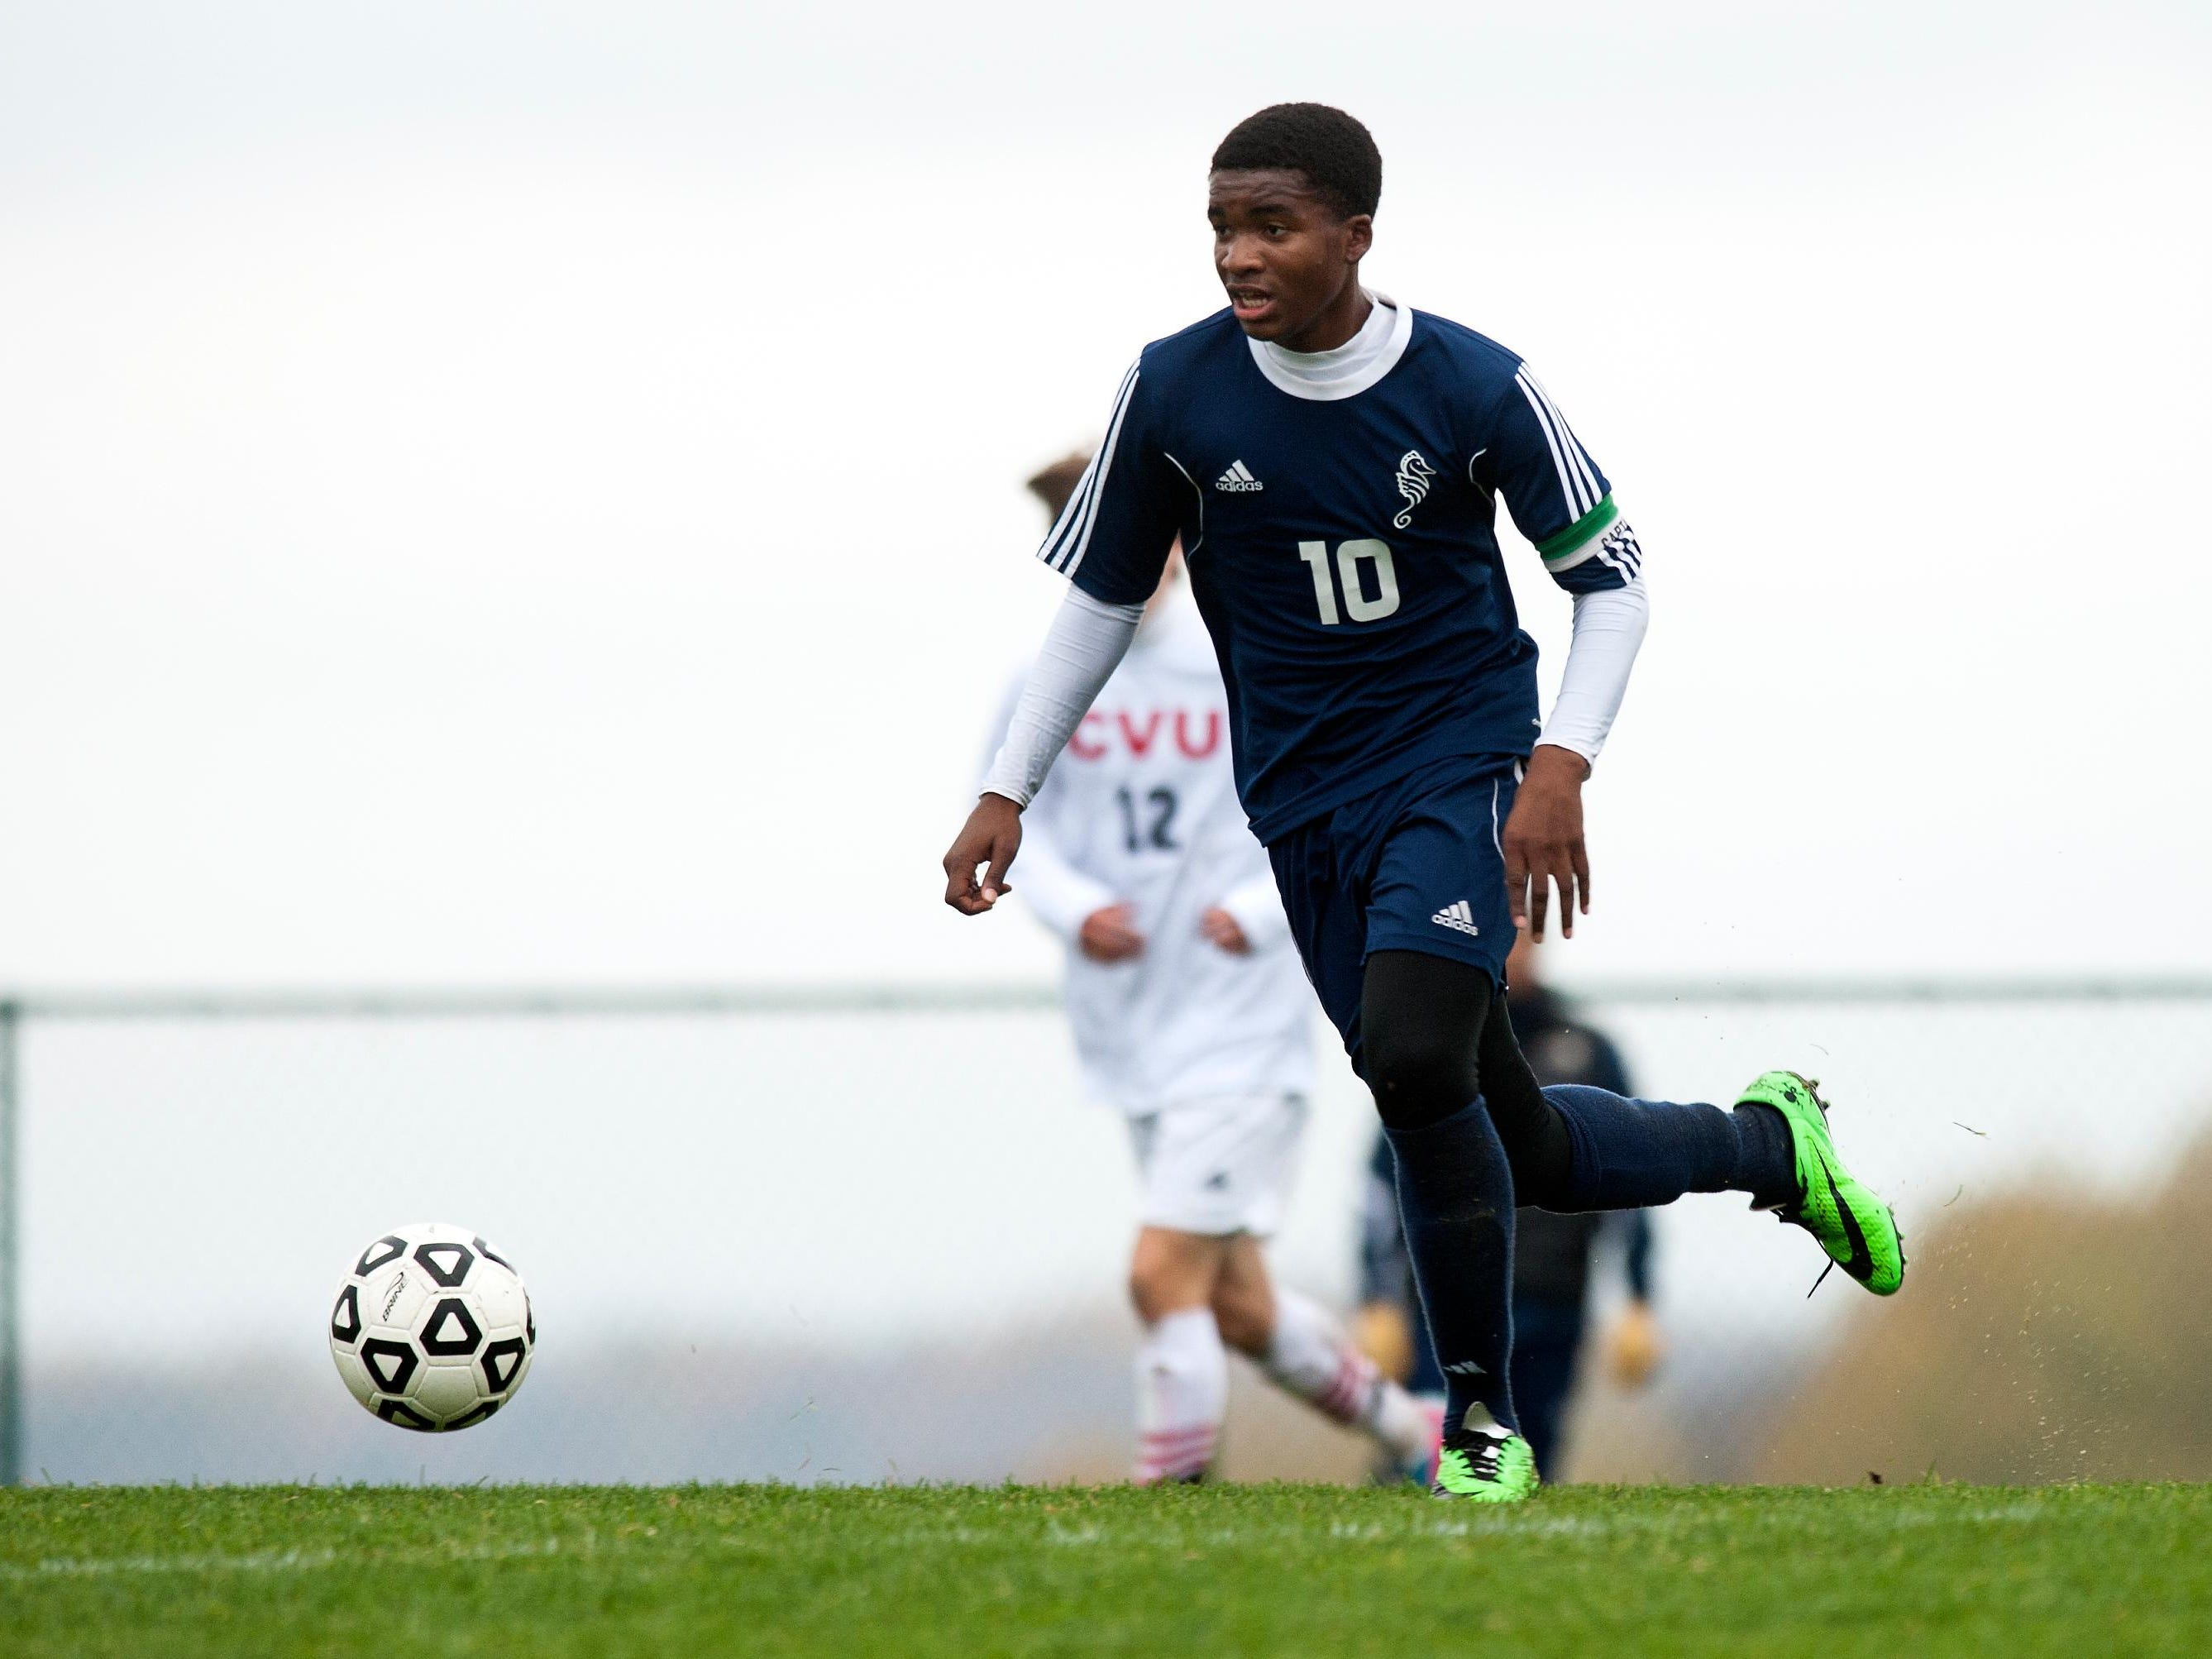 Burlington's Peter Makuni (10) runs down the field with the ball during the boys soccer playoff game between the Burlington Sea Horses and the Champlain Valley Union Redhawks at CVU High School on Wednesday afternoon October 22, 2014 in Hinesburg, Vermont. (BRIAN JENKINS, for the Free Press)